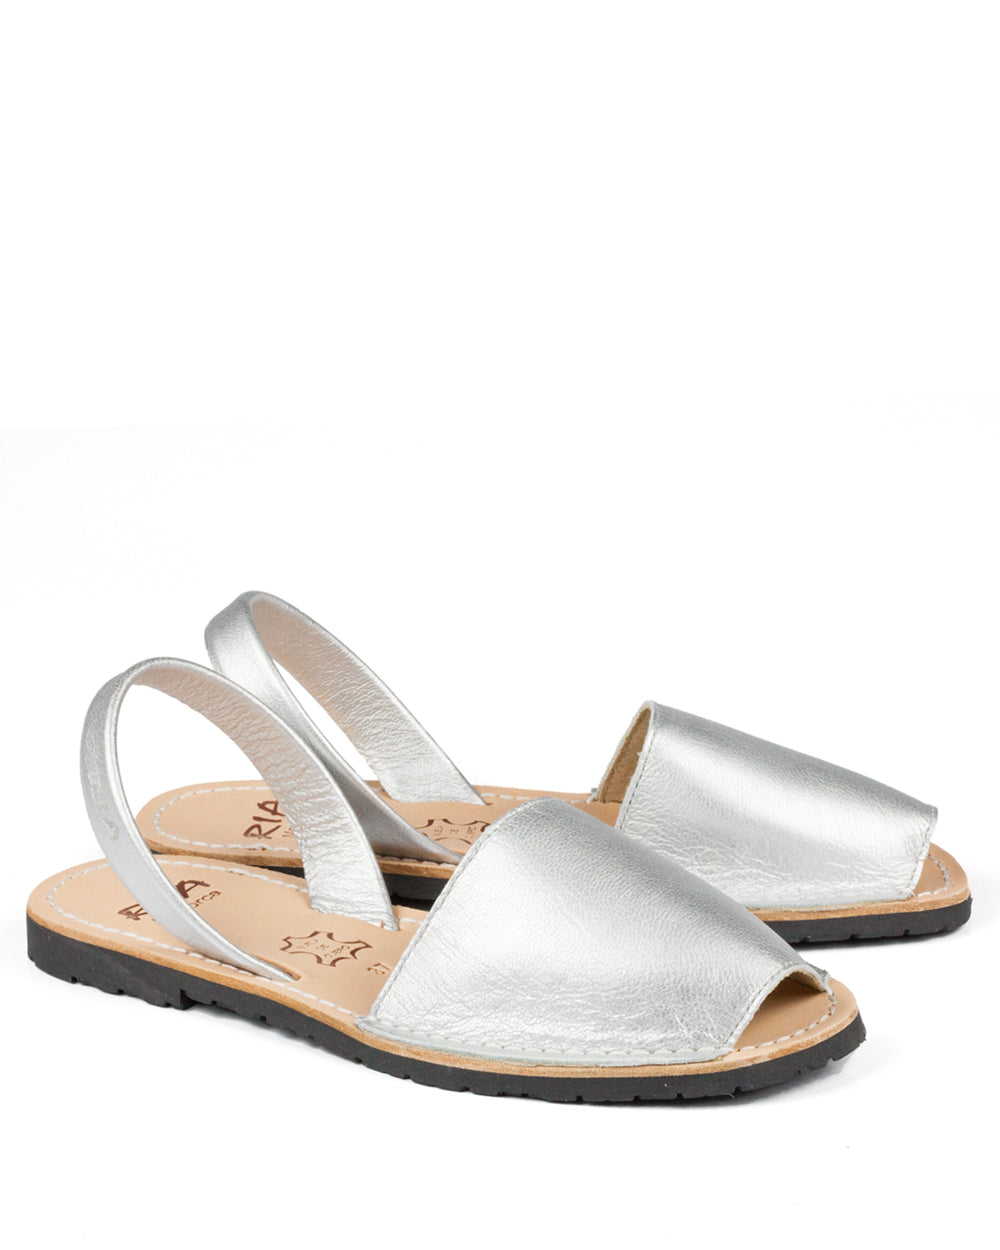 Menorcan Sandals Silver Leather - The Espadrille Hut